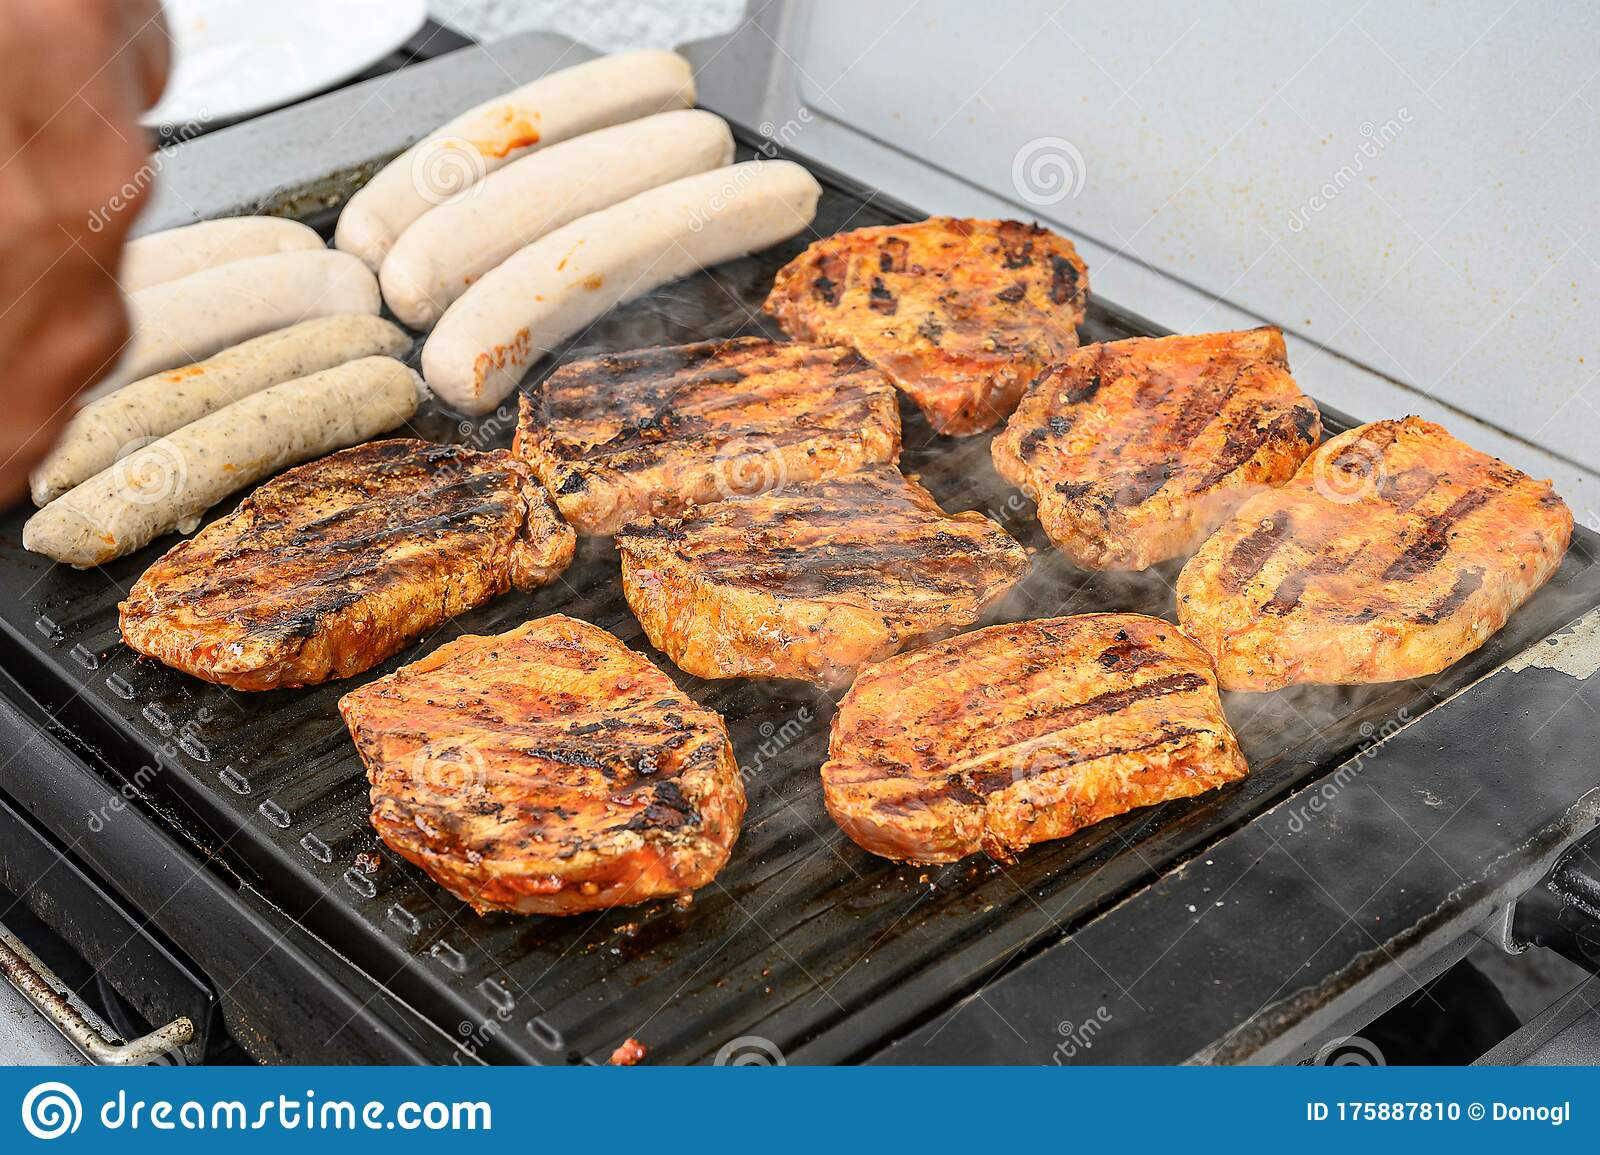 Barbecue Grill Bbq On Coal Charcoal Grill With Steaks Bratwurst Sausages And Meat Delicious Summer Meal Stock Photo Image Of Barbecued Grilled 175887810